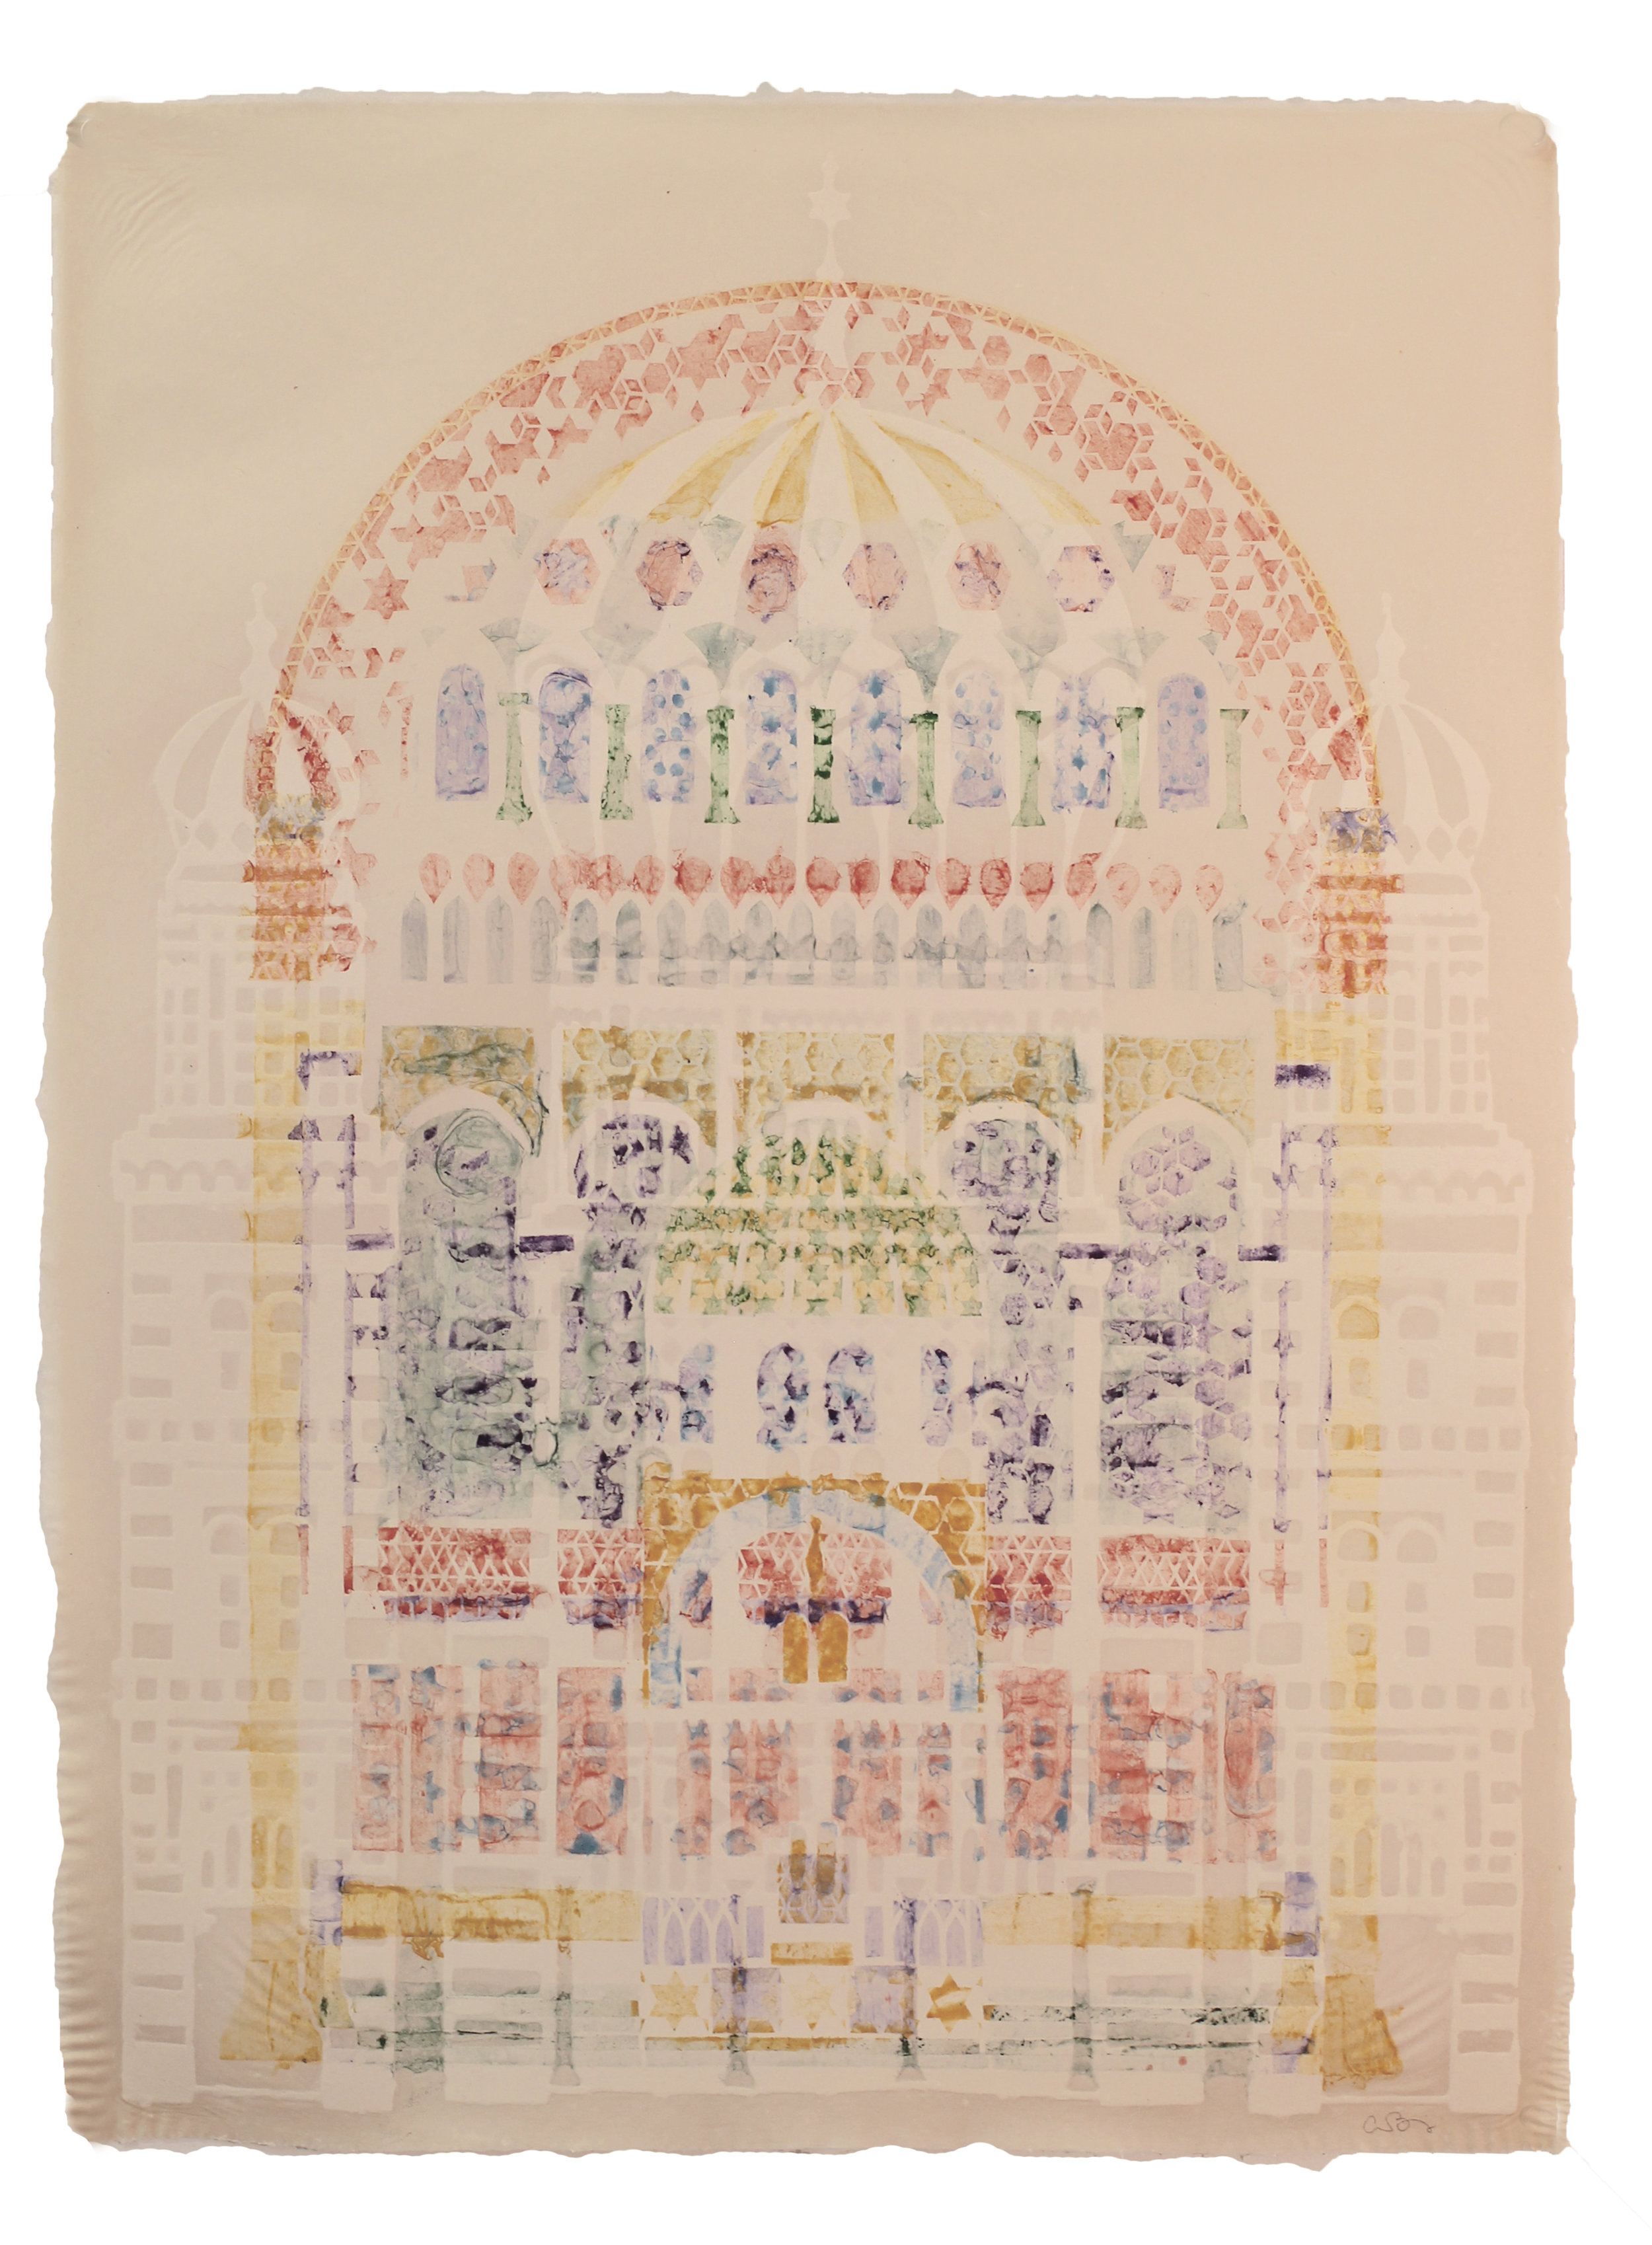 Anna Benjamin   Neue Synagogue I  Cotton blowout and pigmented linen pulp paint on abaca  30 x 22 inches  Boi v'Shalom | Come in Peace